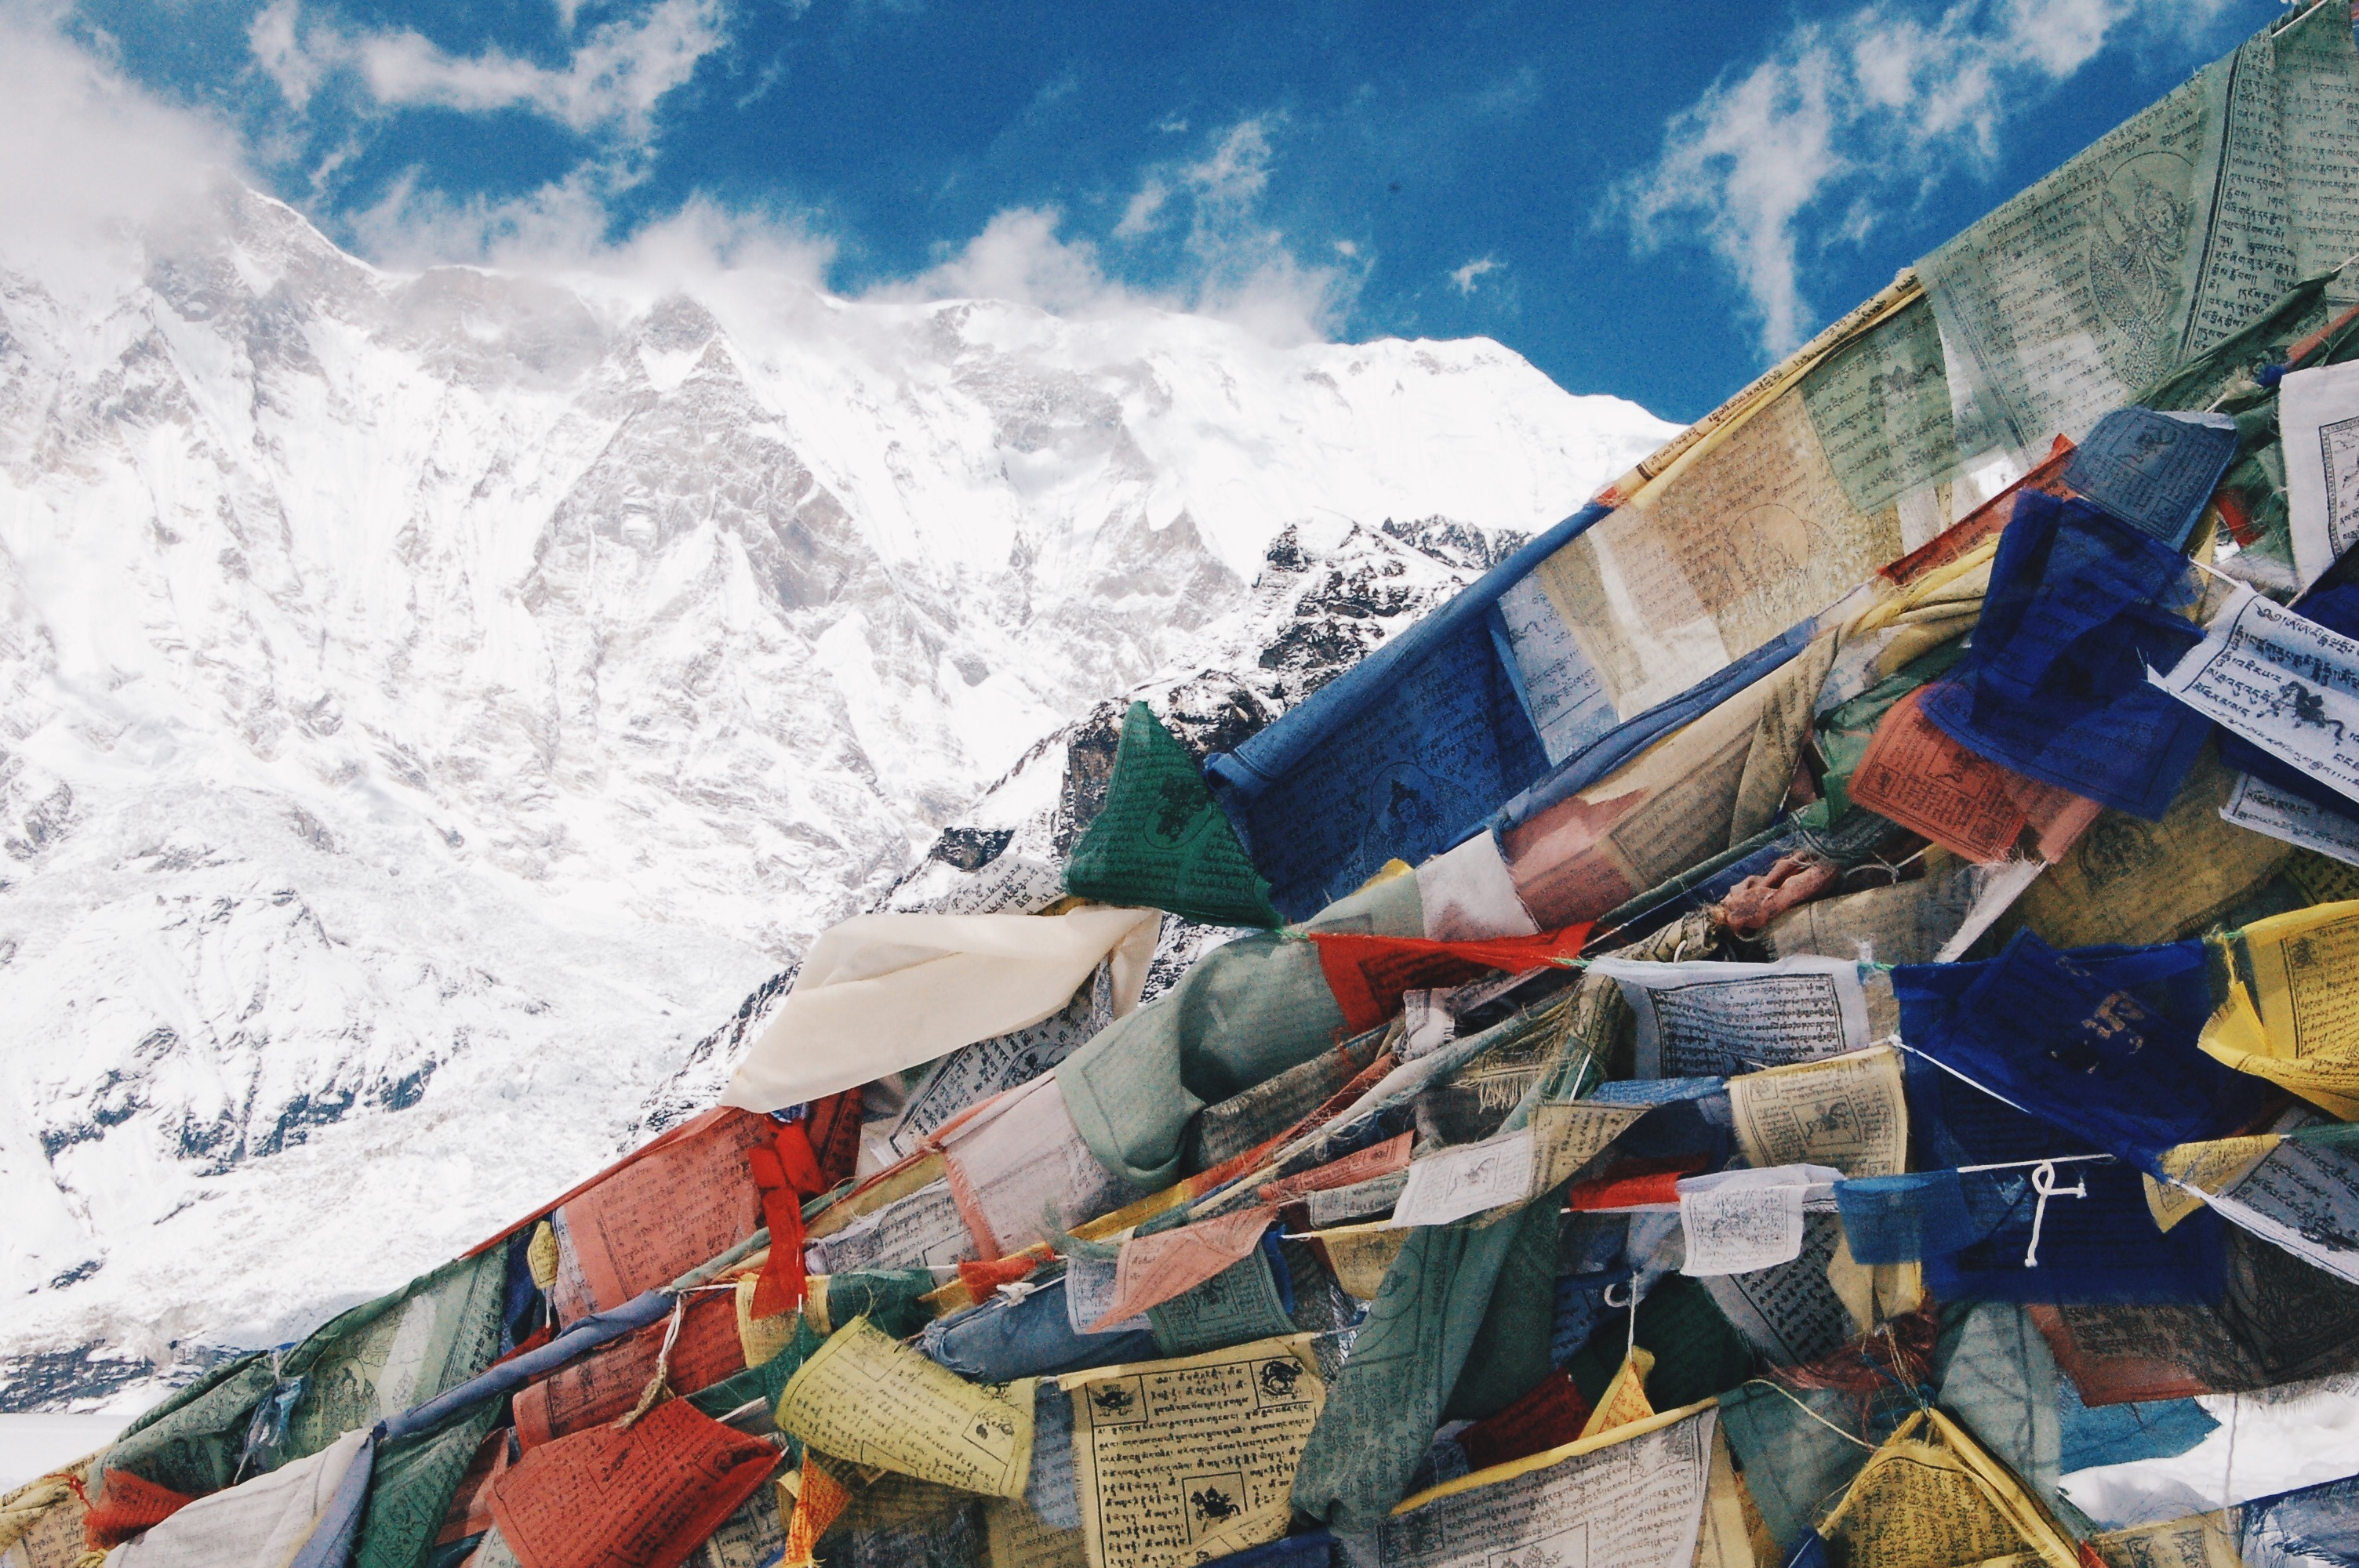 prayer flags in focus with annapurna mountains behind from annapurna base camp